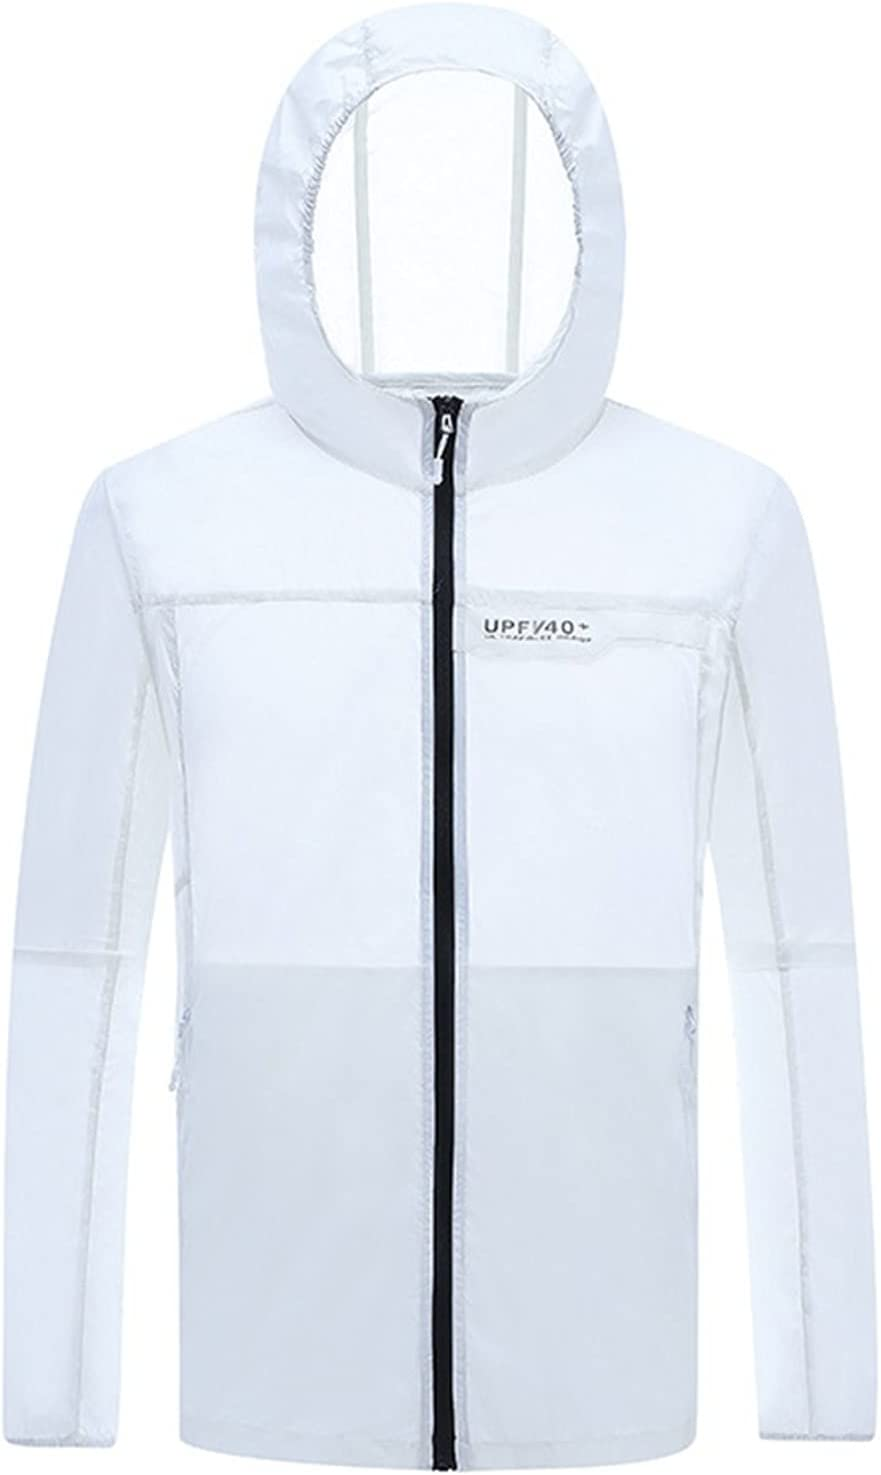 XArmanis Summer Men's UPF 50+ Ranking TOP2 Lo Ultra-Thin Silk Ice 2021 spring and summer new Breathable